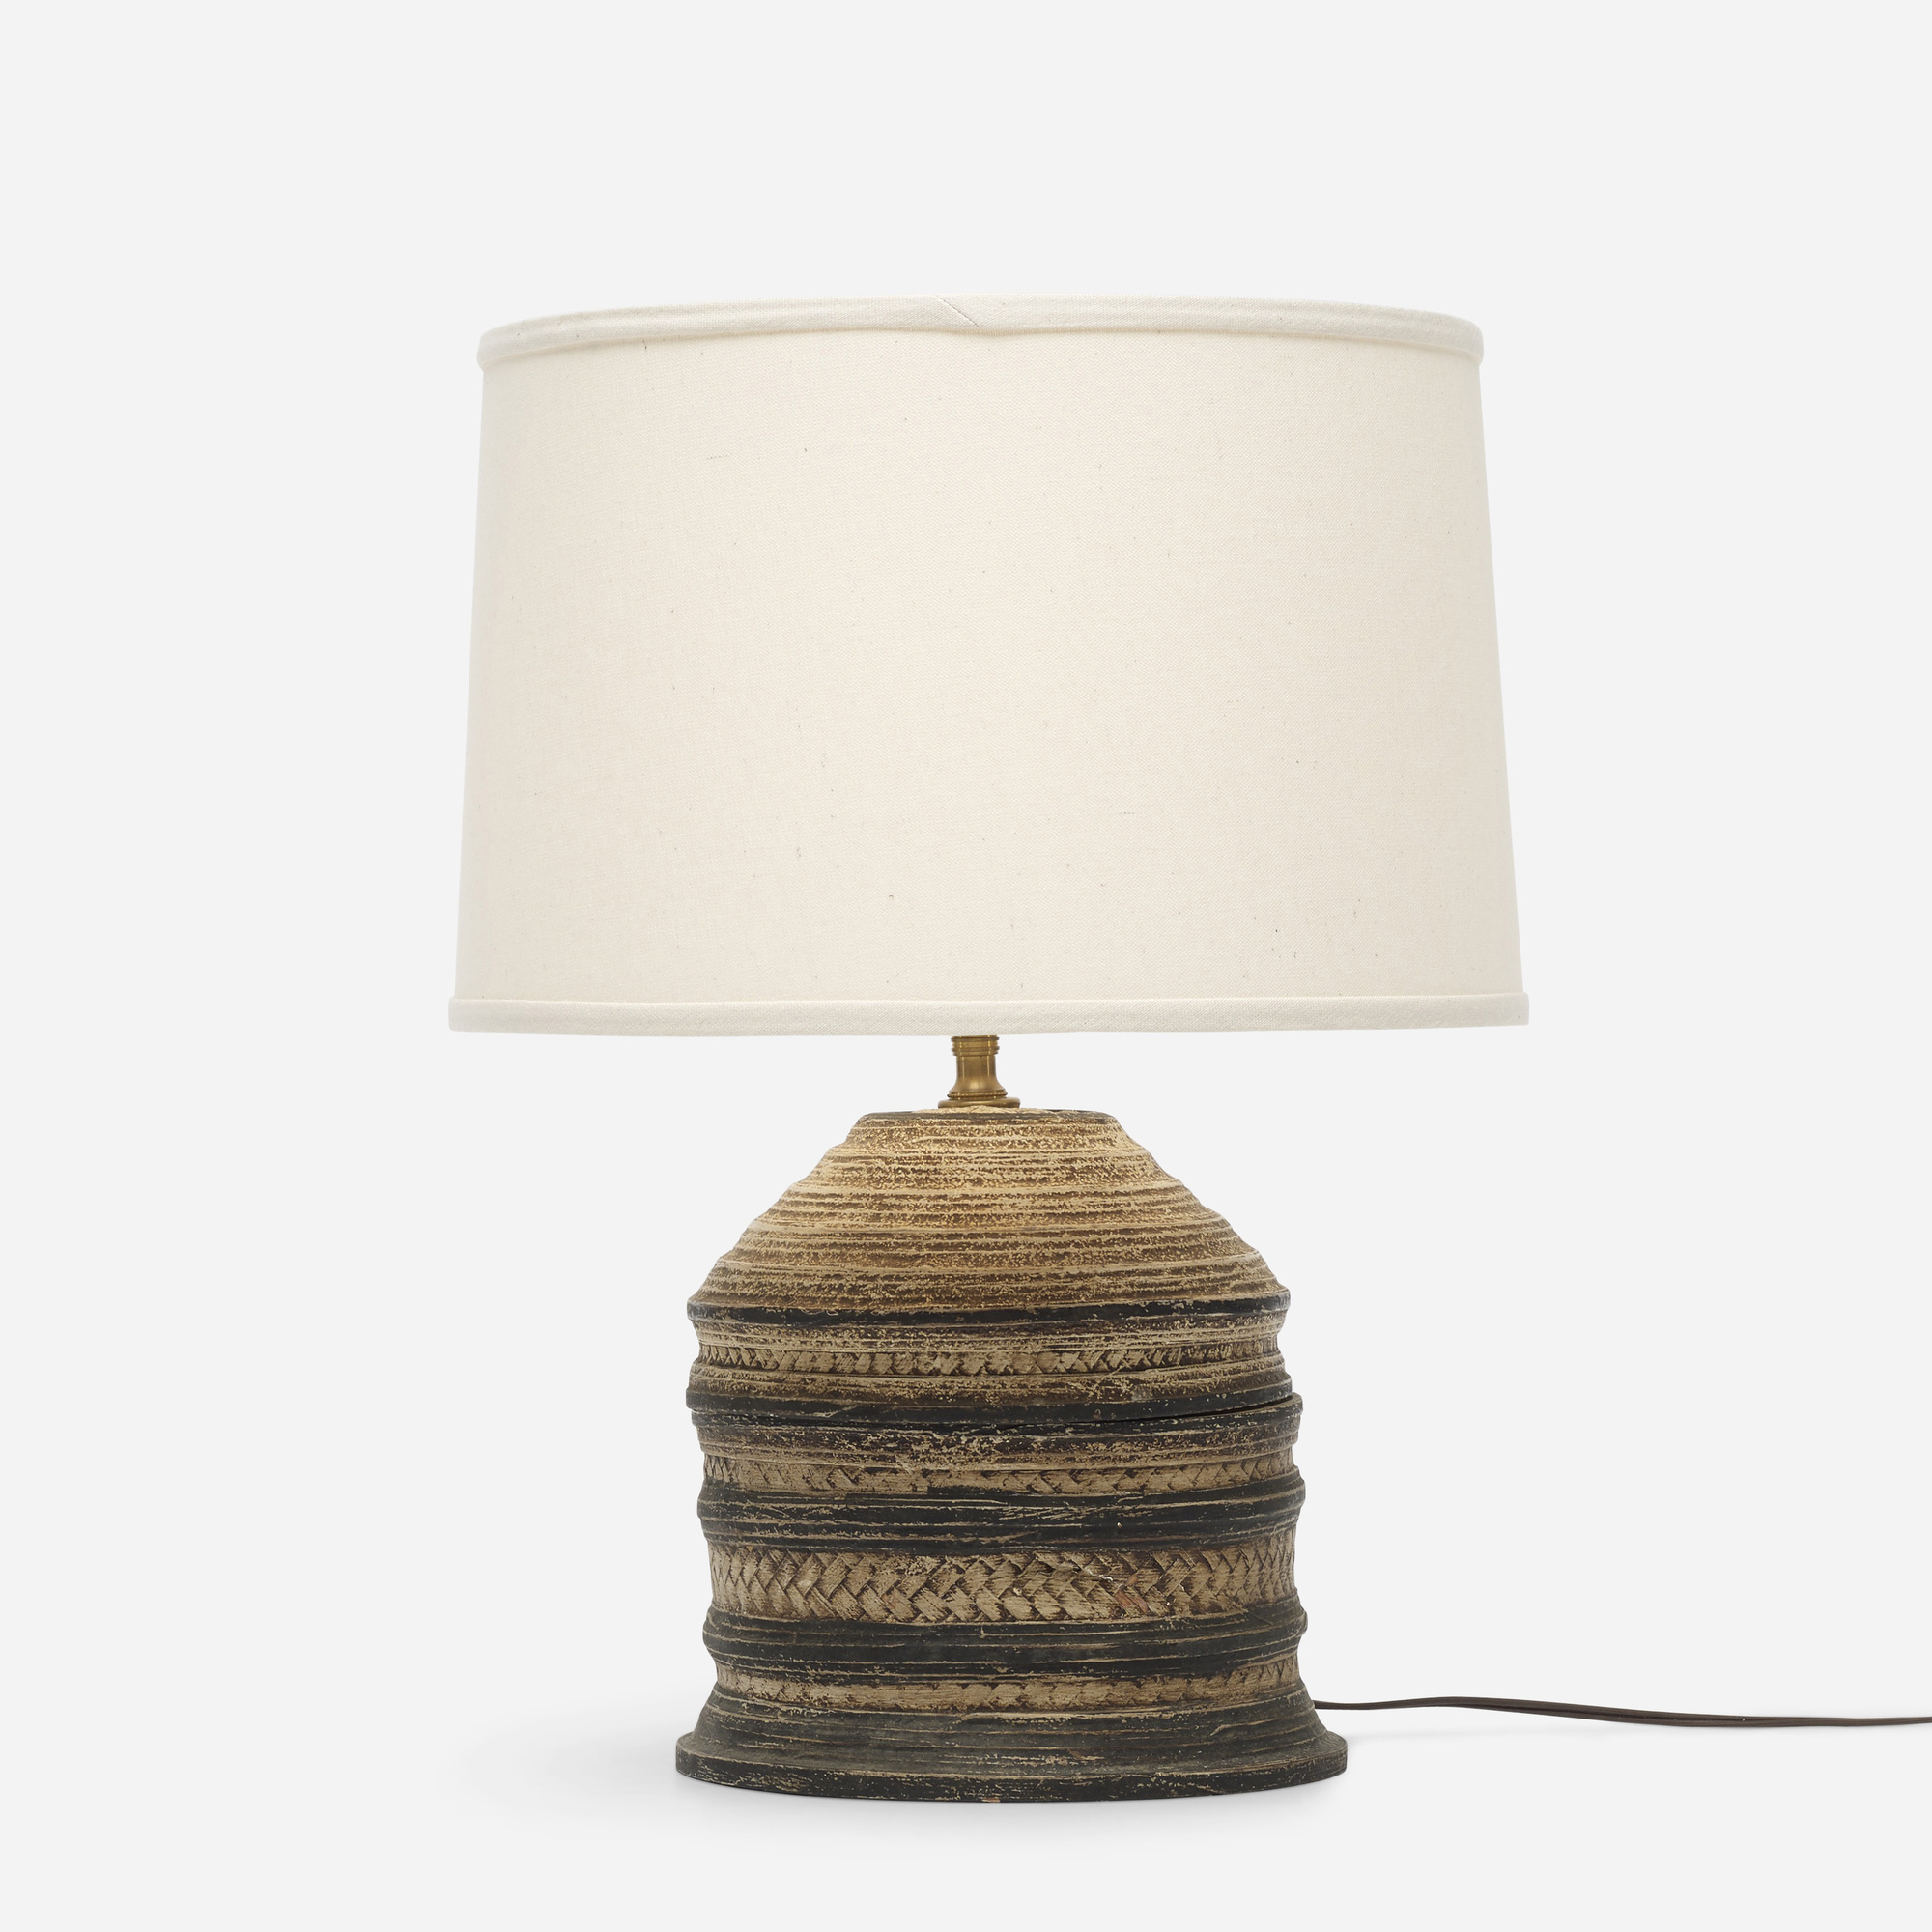 110: Modern / table lamp (1 of 2)